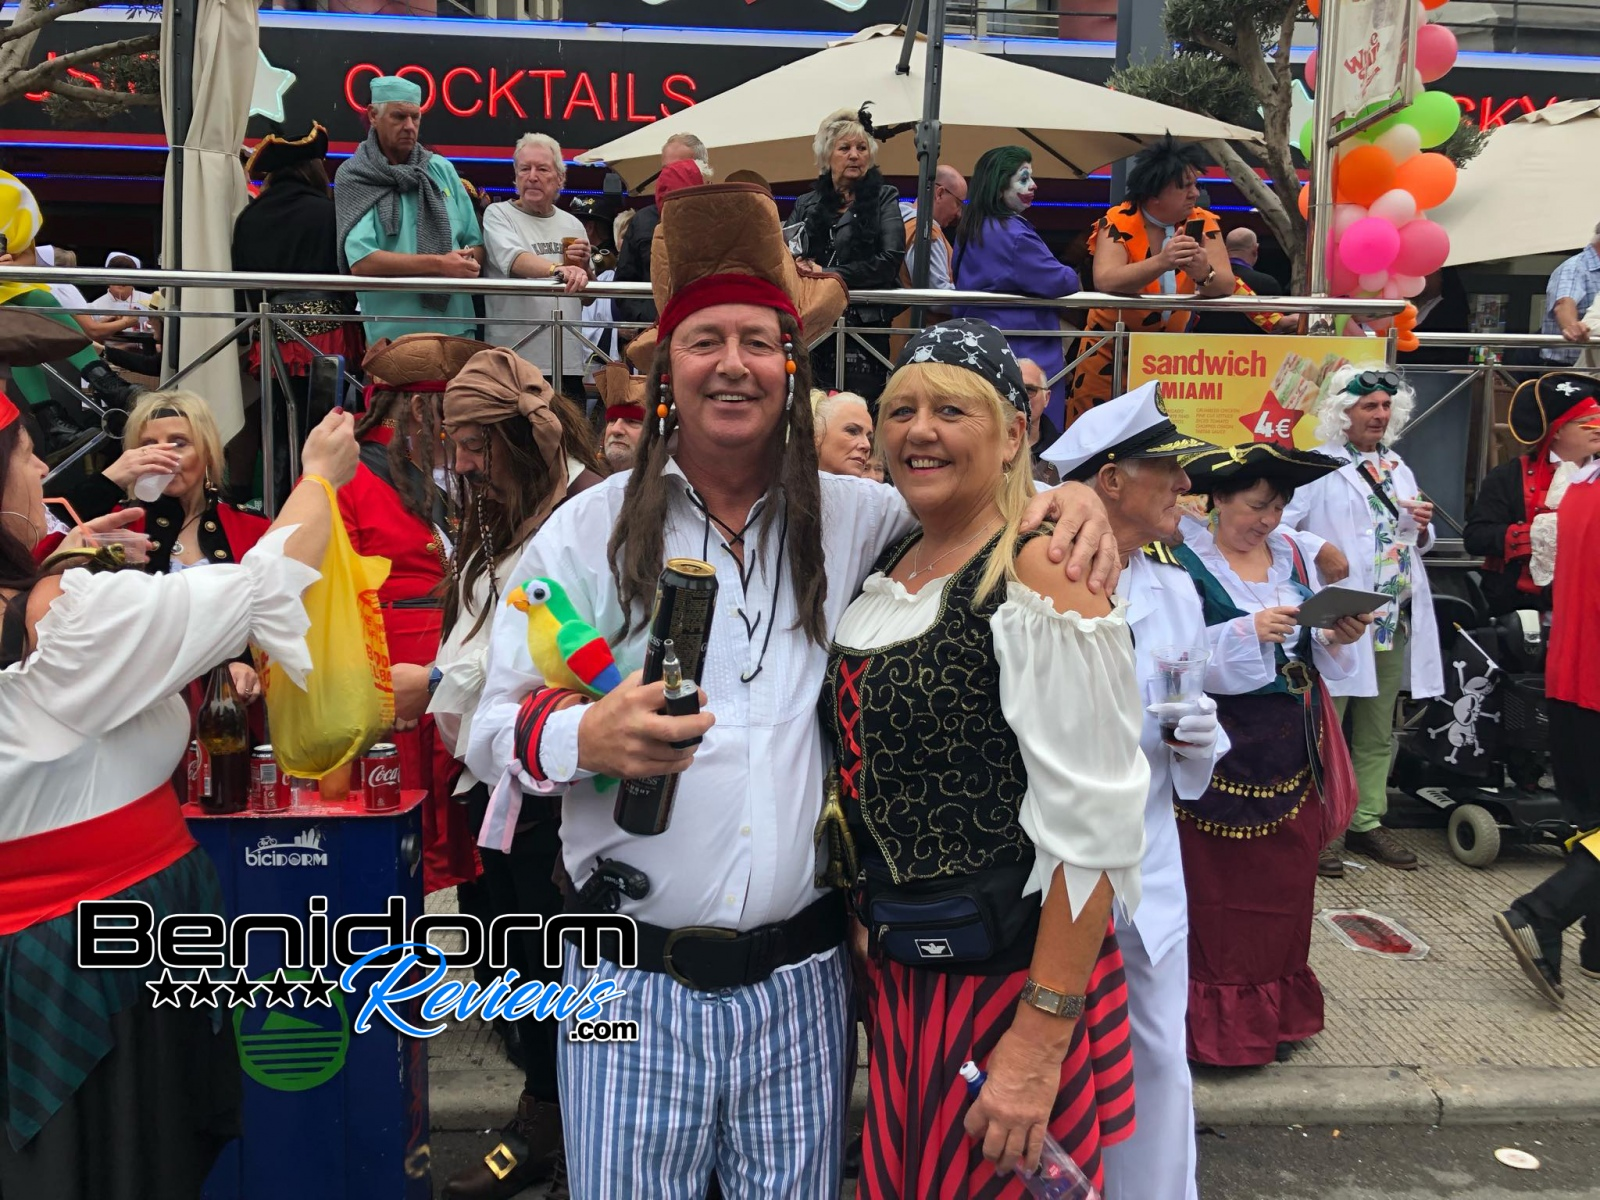 Benidorm-Fiestas-2019-Fancy-Dress-236